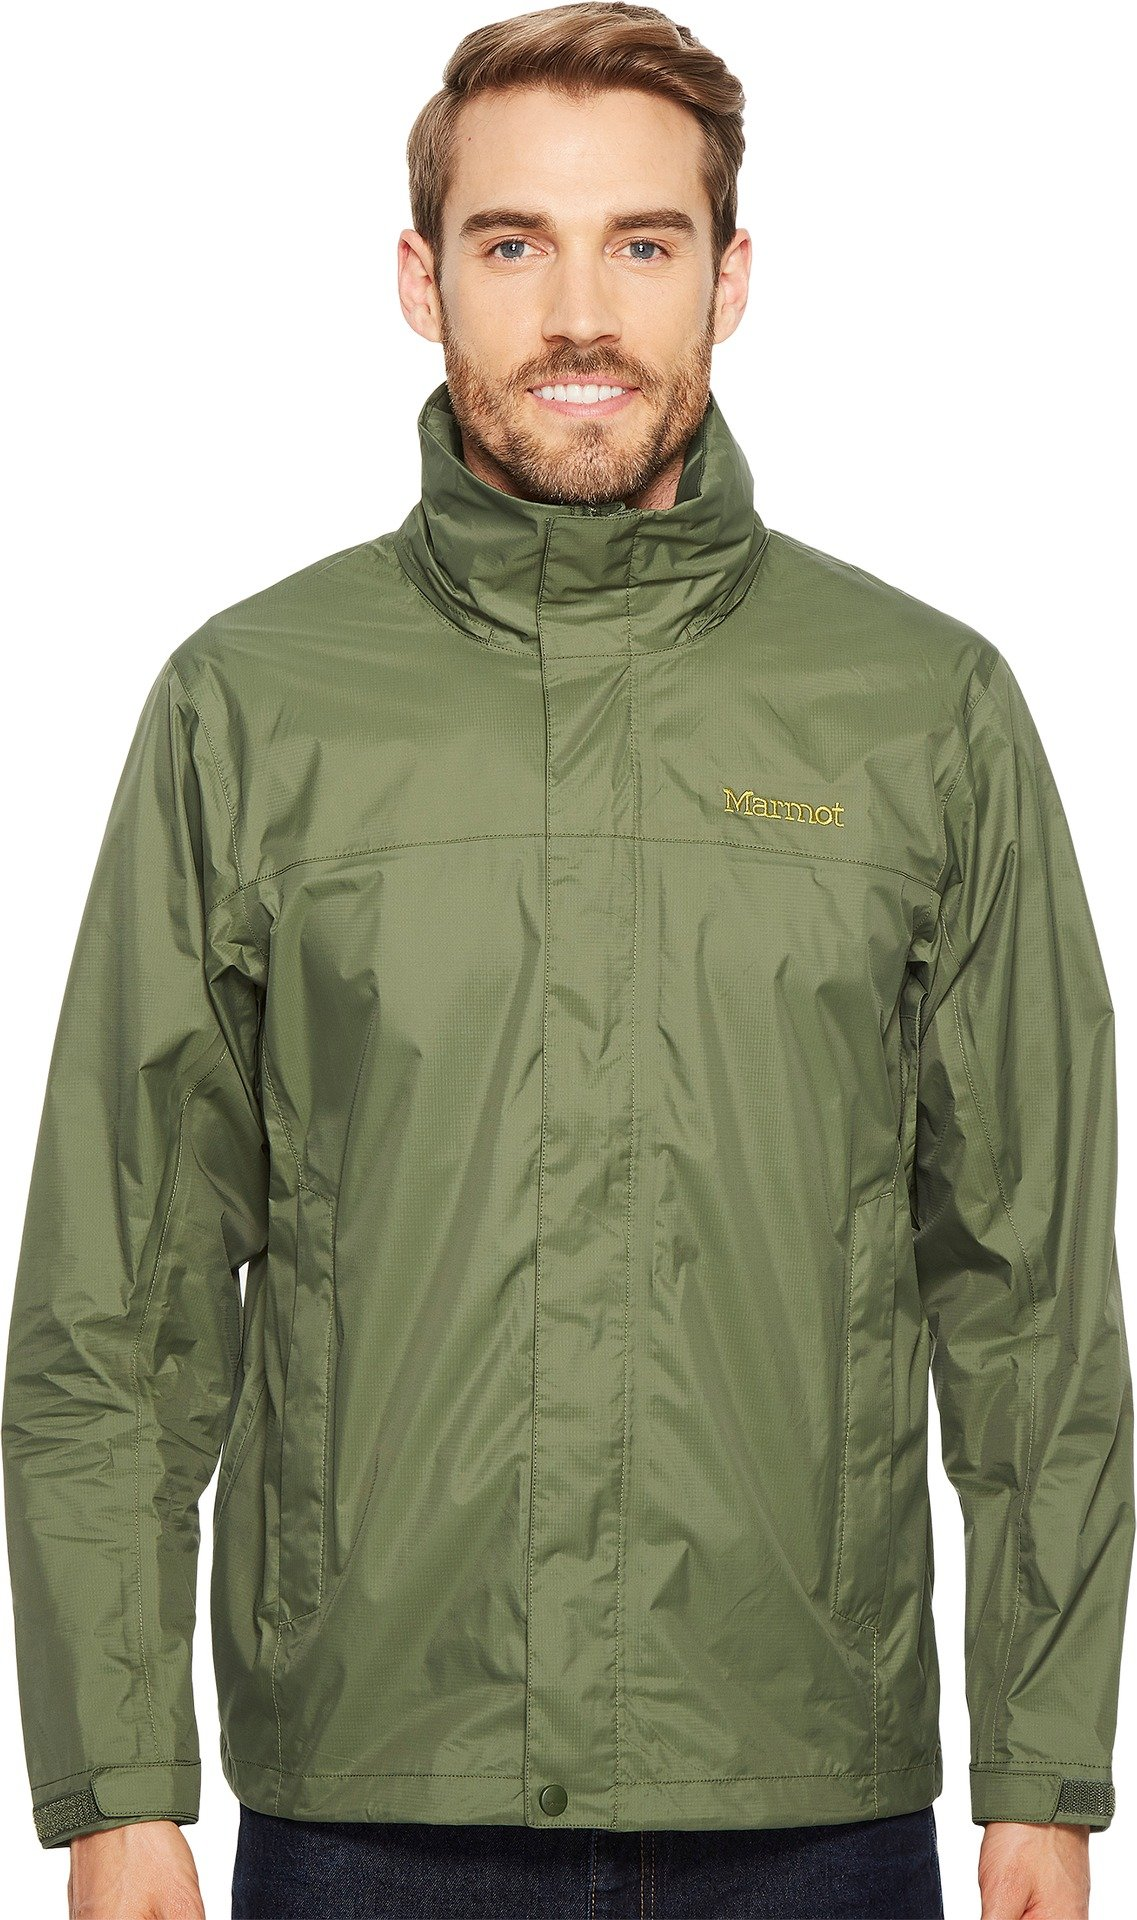 Marmot Men's PreCip Jacket Crocodile Medium by Marmot